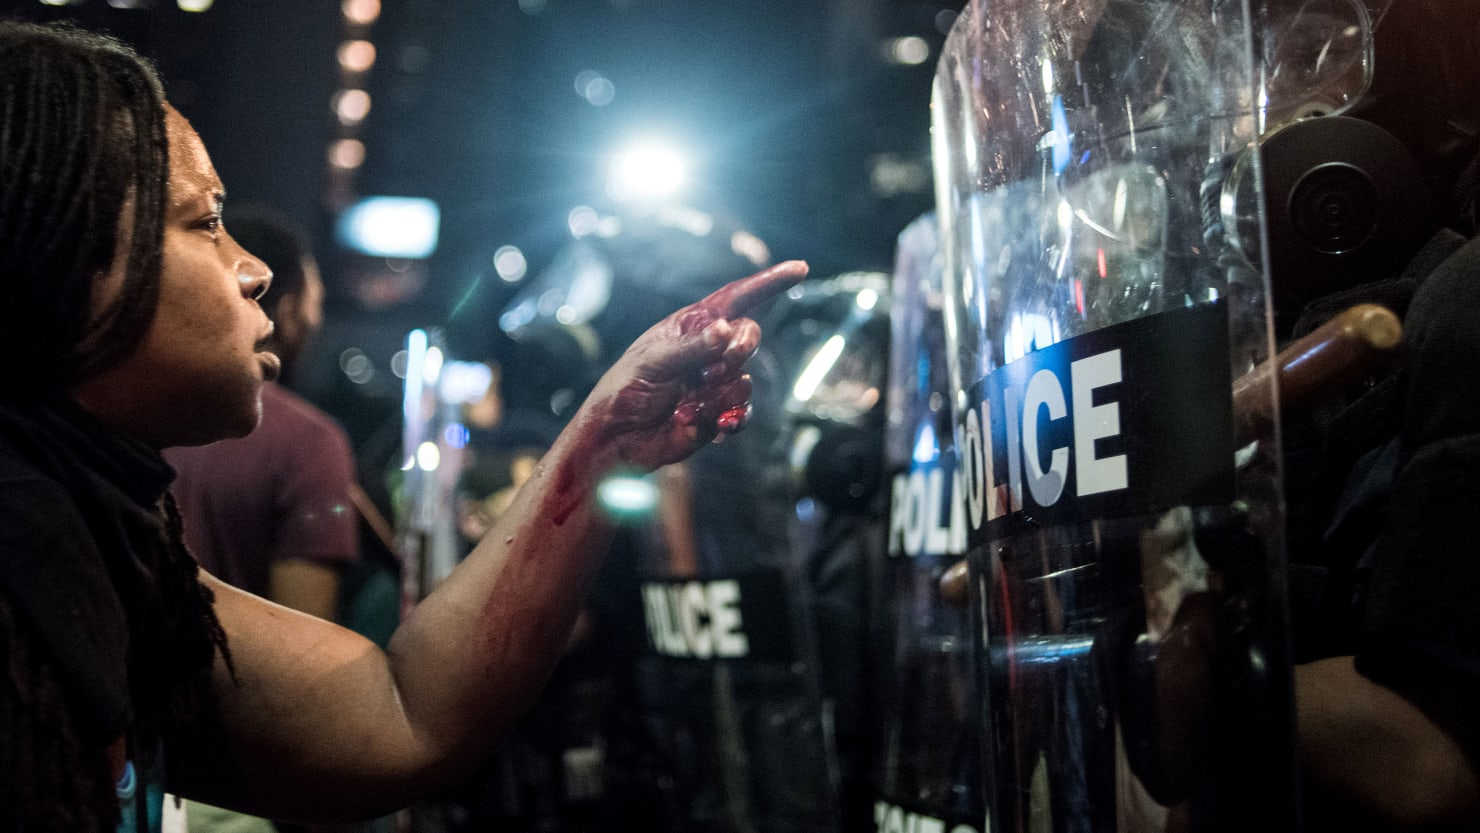 who does police brutality affect the most